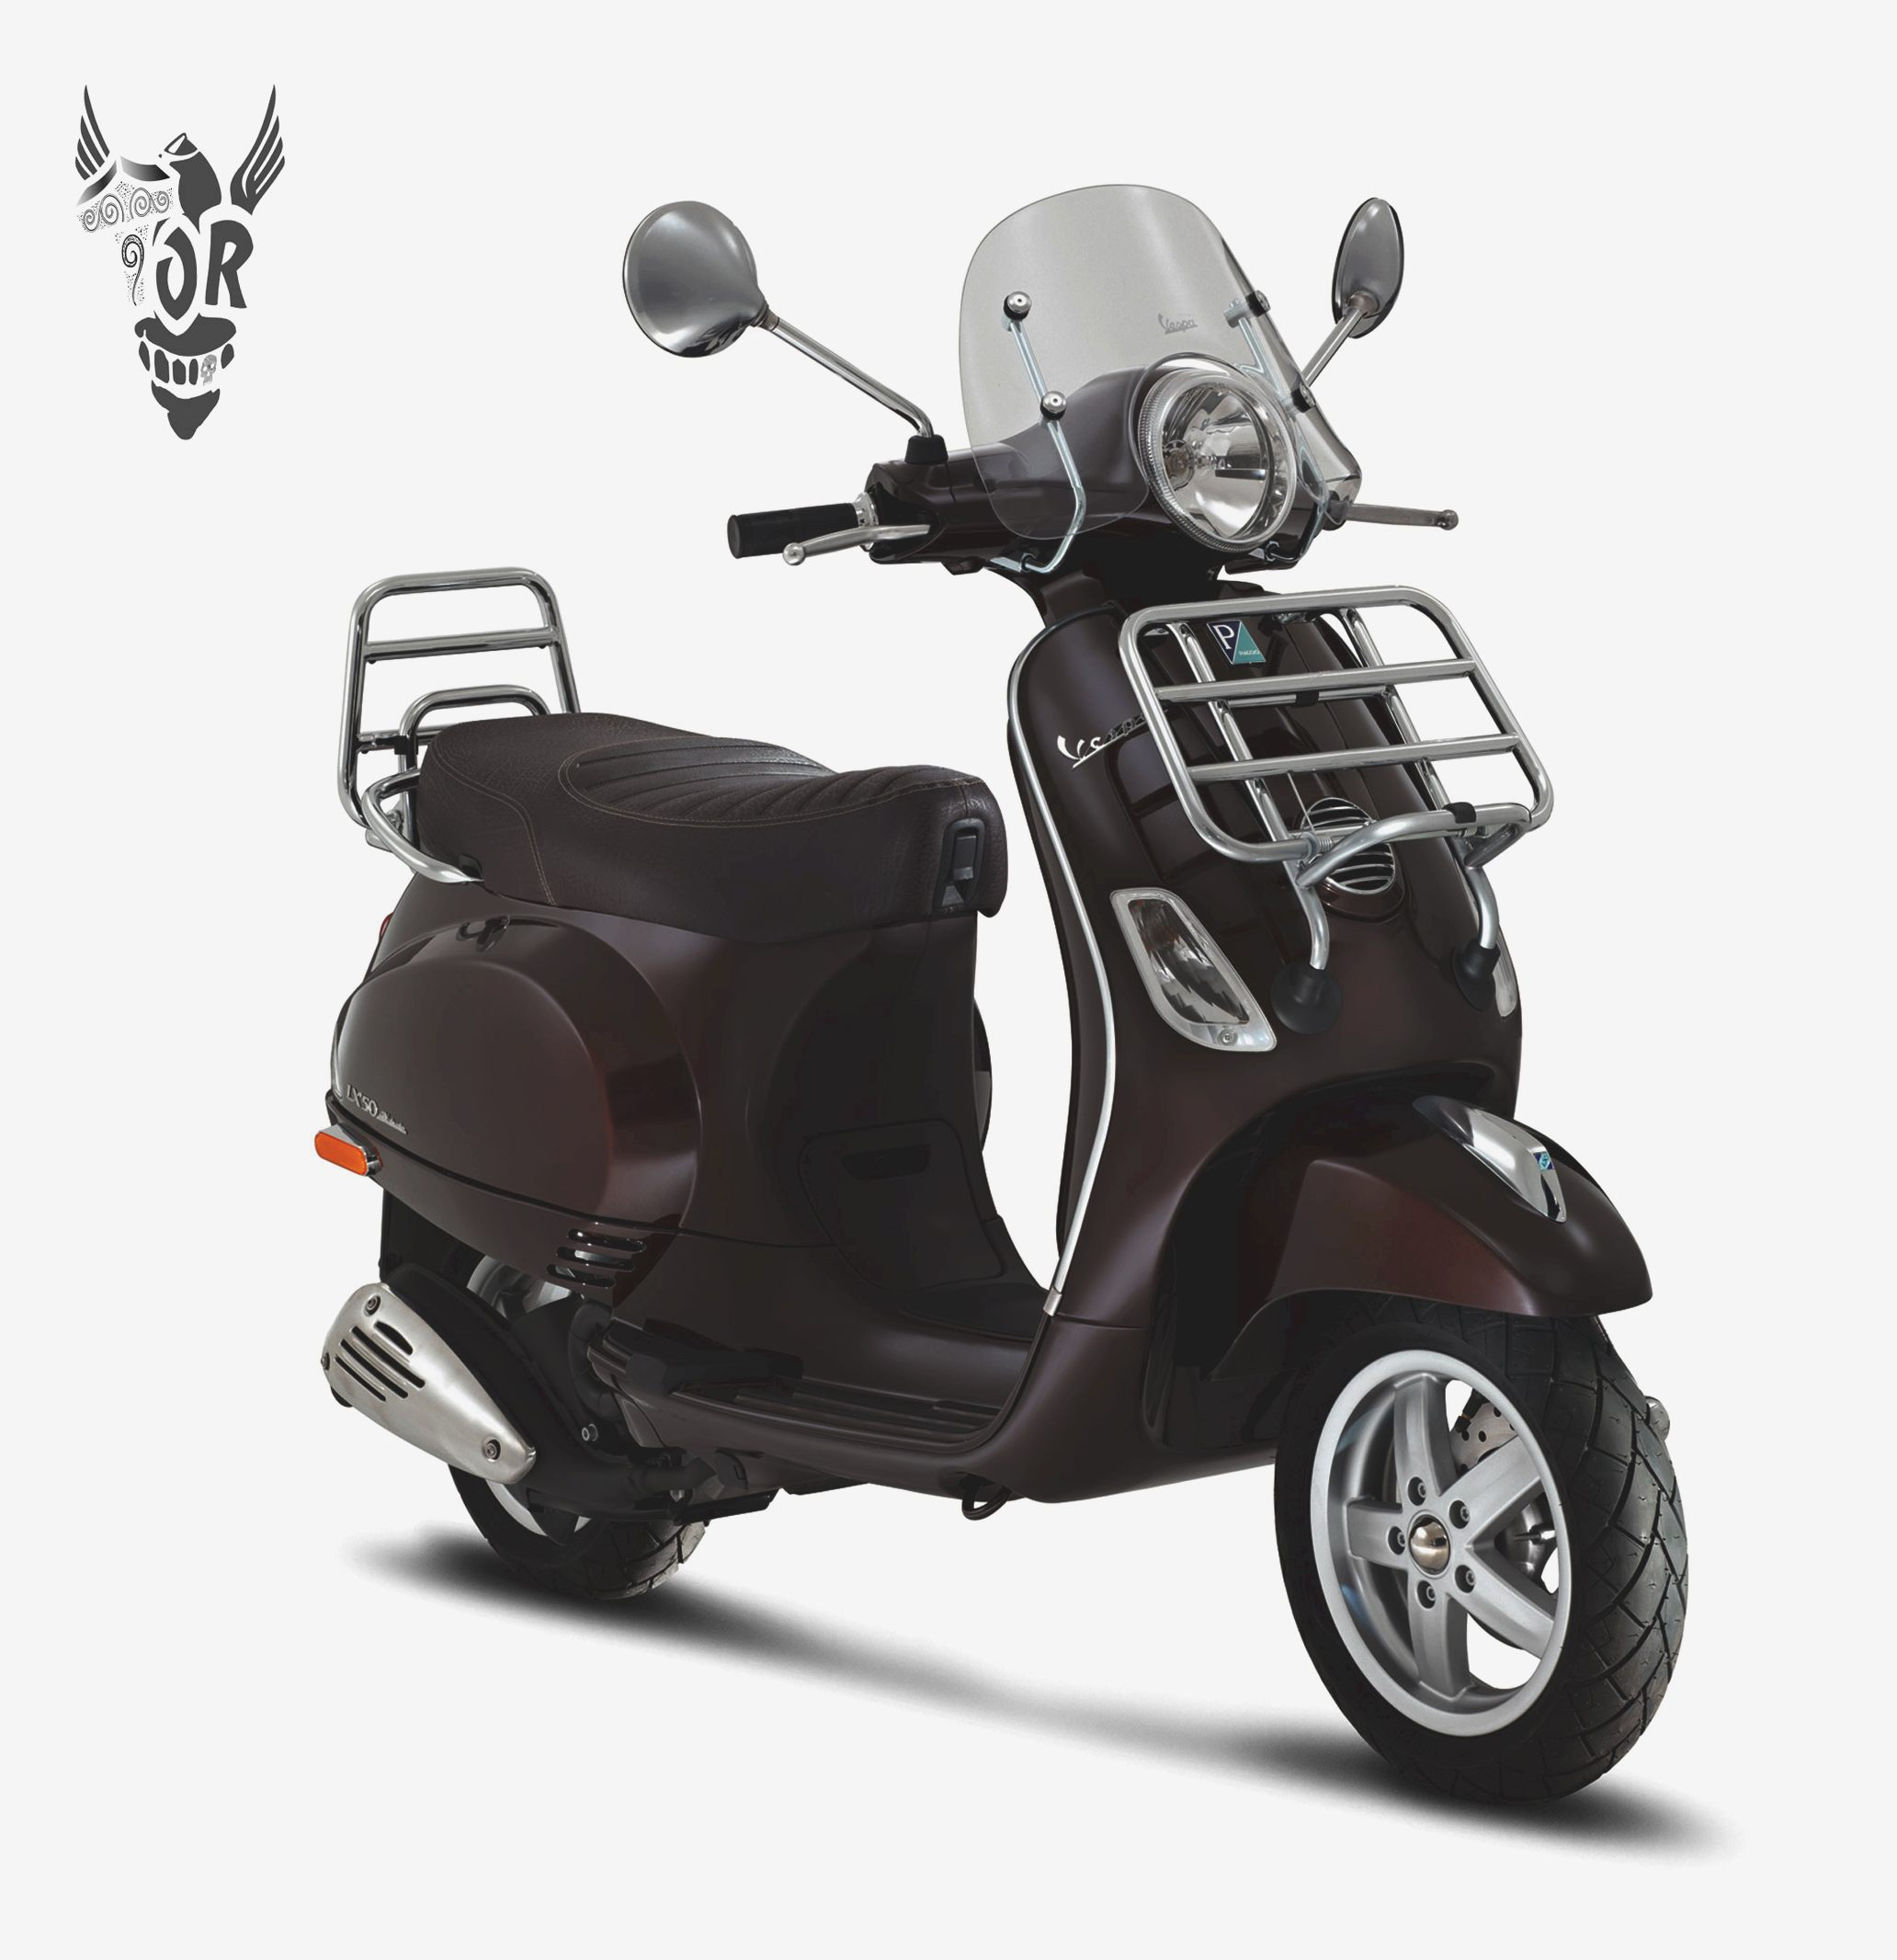 Vespa LX 150 wallpapers #130285